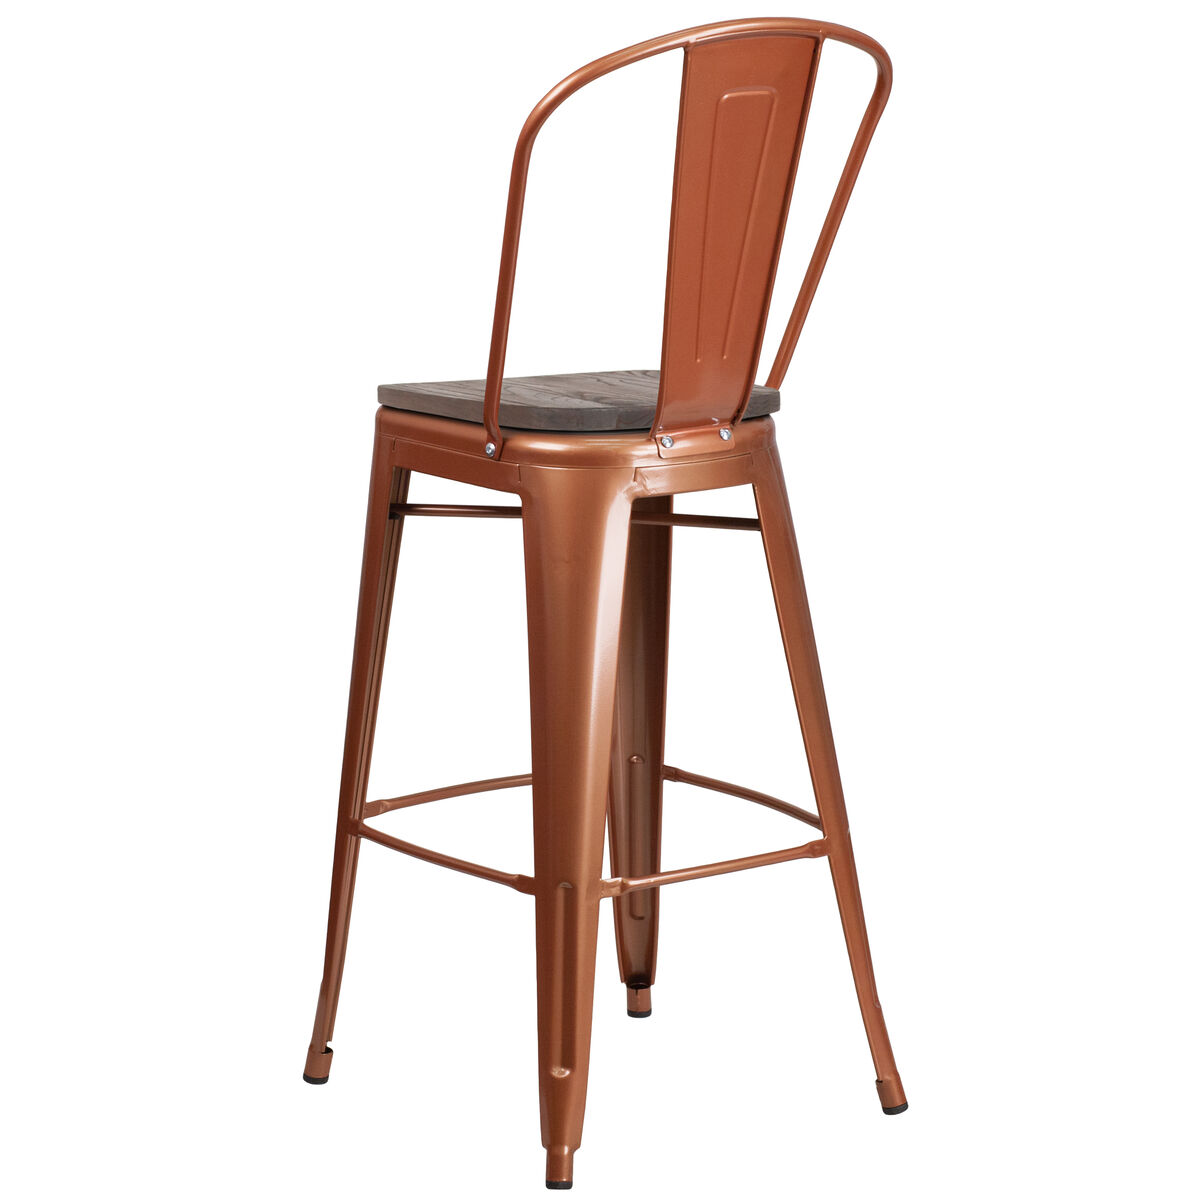 30 Copper Metal Bar Stool Et 3534 30 Poc Wd Gg Bestchiavarichairscom